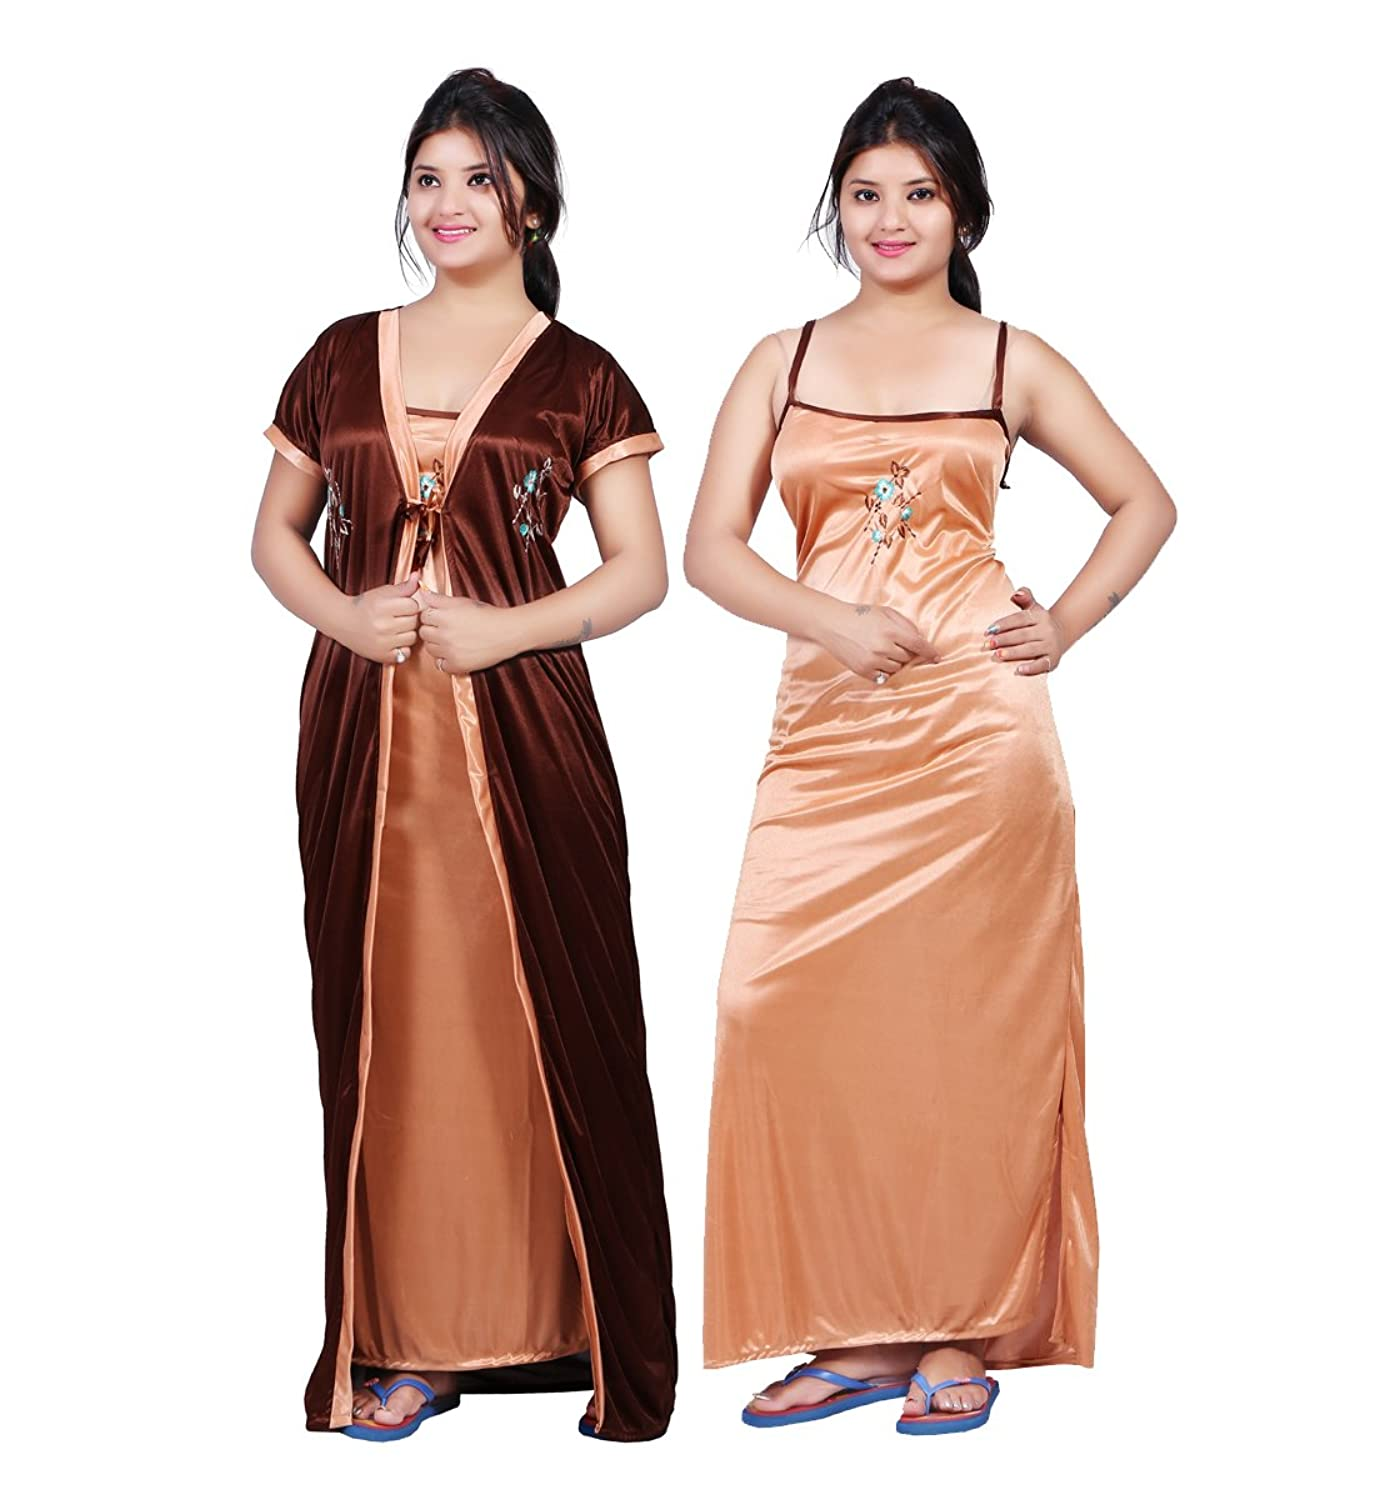 dc634674bc8 Nighties   Nightdresses  Buy nightdresses online for women in India ...